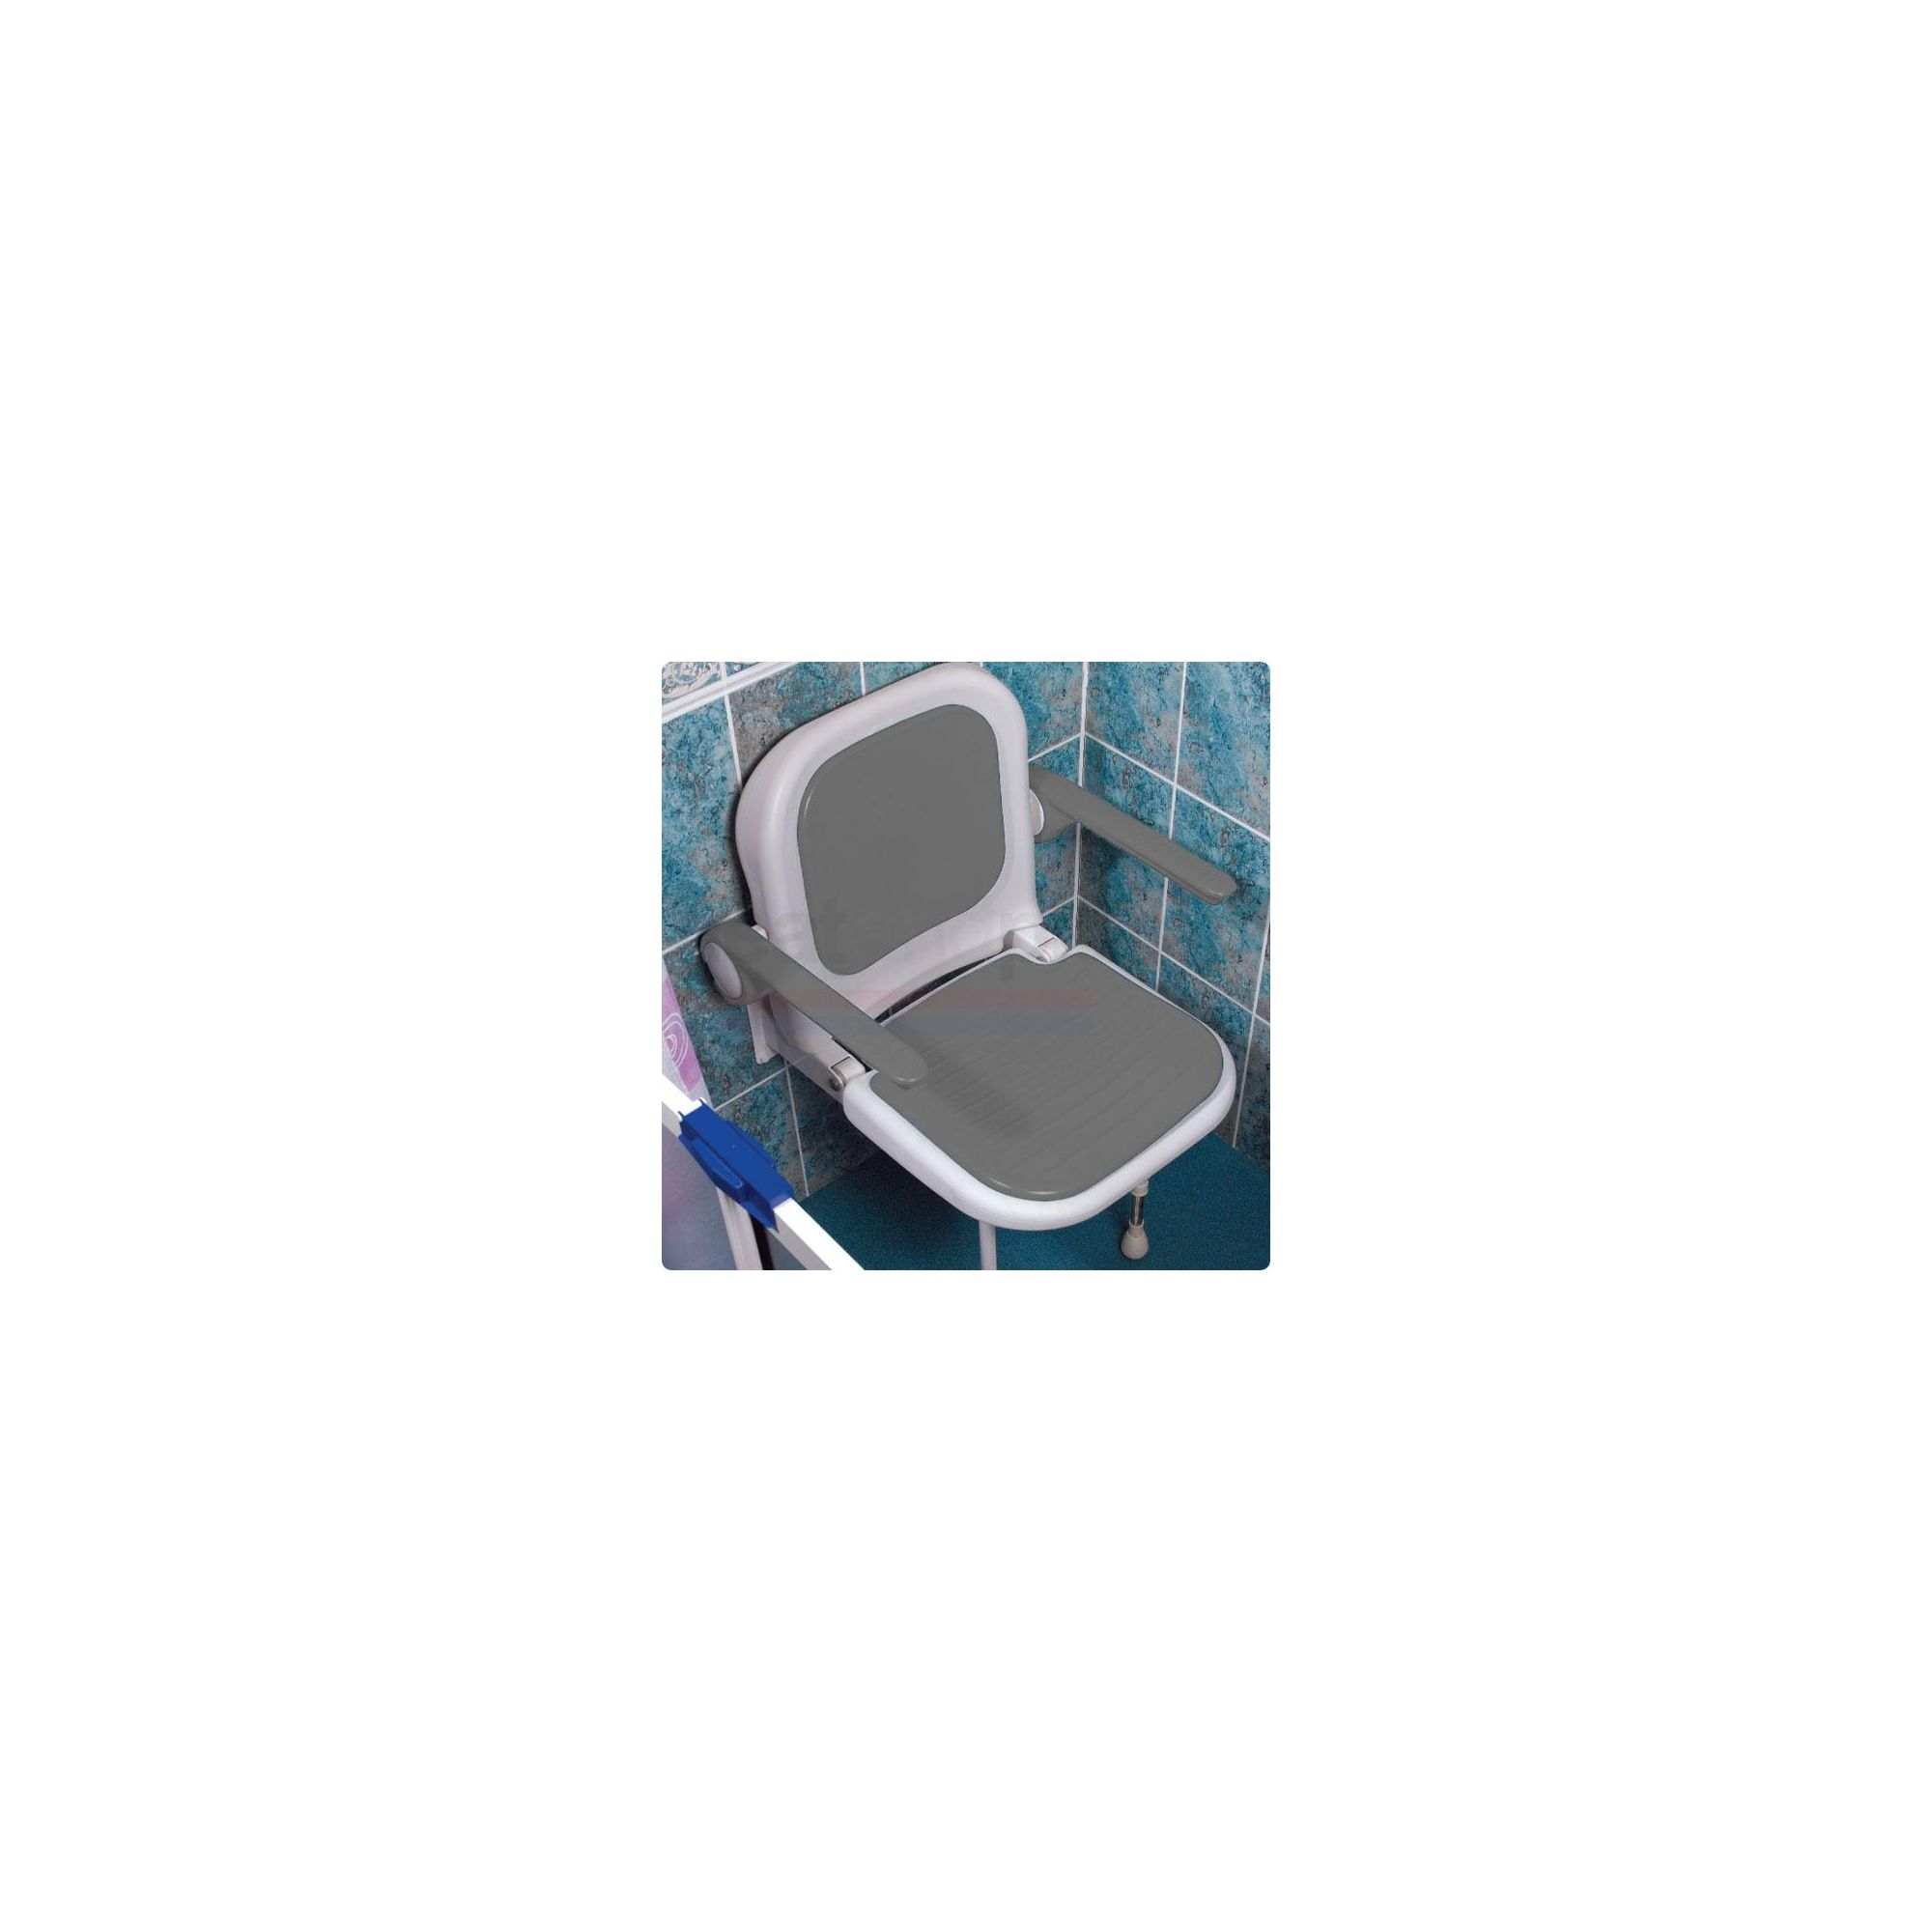 AKW 4000 Series Standard Fold Up Shower Seat Grey with Back and Grey Arms at Tesco Direct